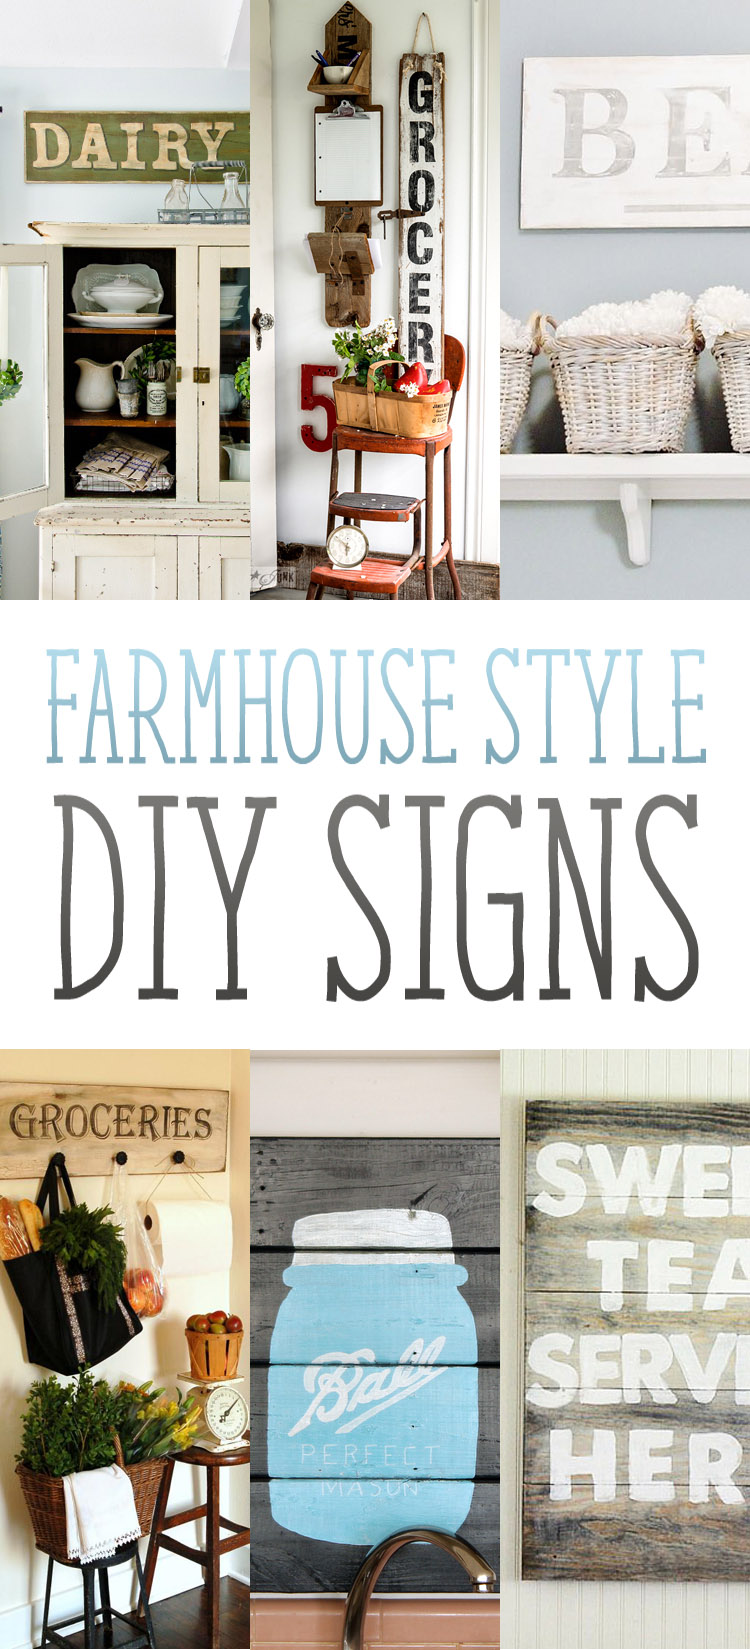 http://thecottagemarket.com/wp-content/uploads/2015/11/farmhousesign-TOWER-000.jpg